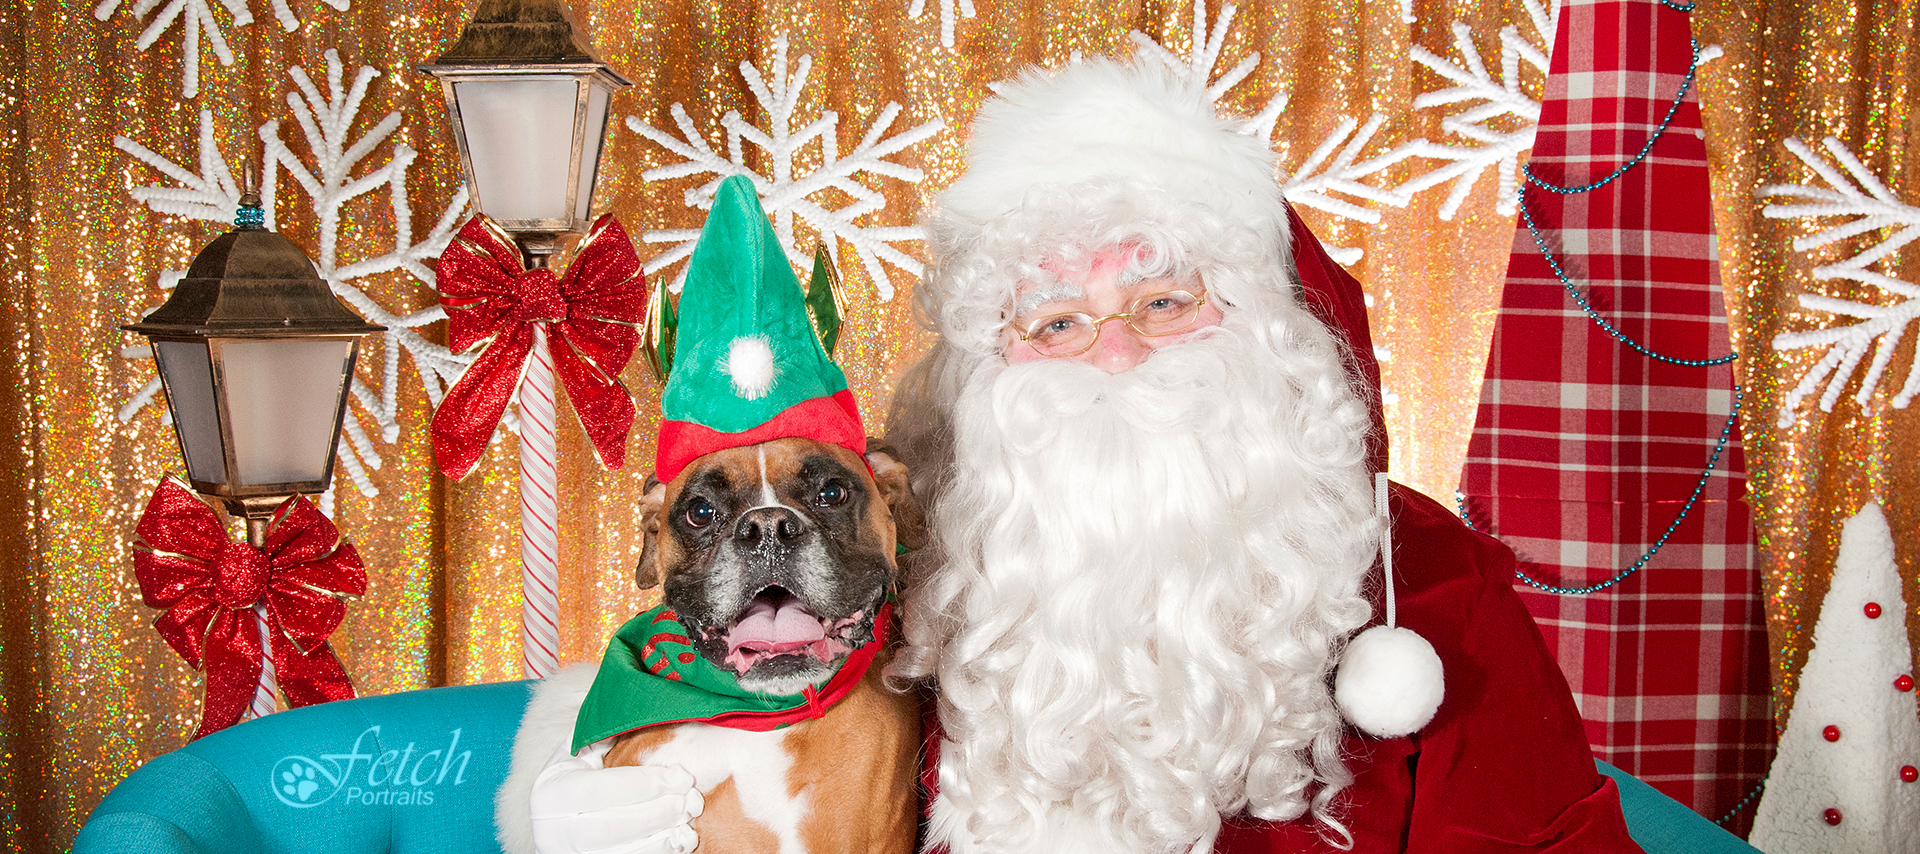 Brown and white boxer with green elf hat on sitting next to Santa